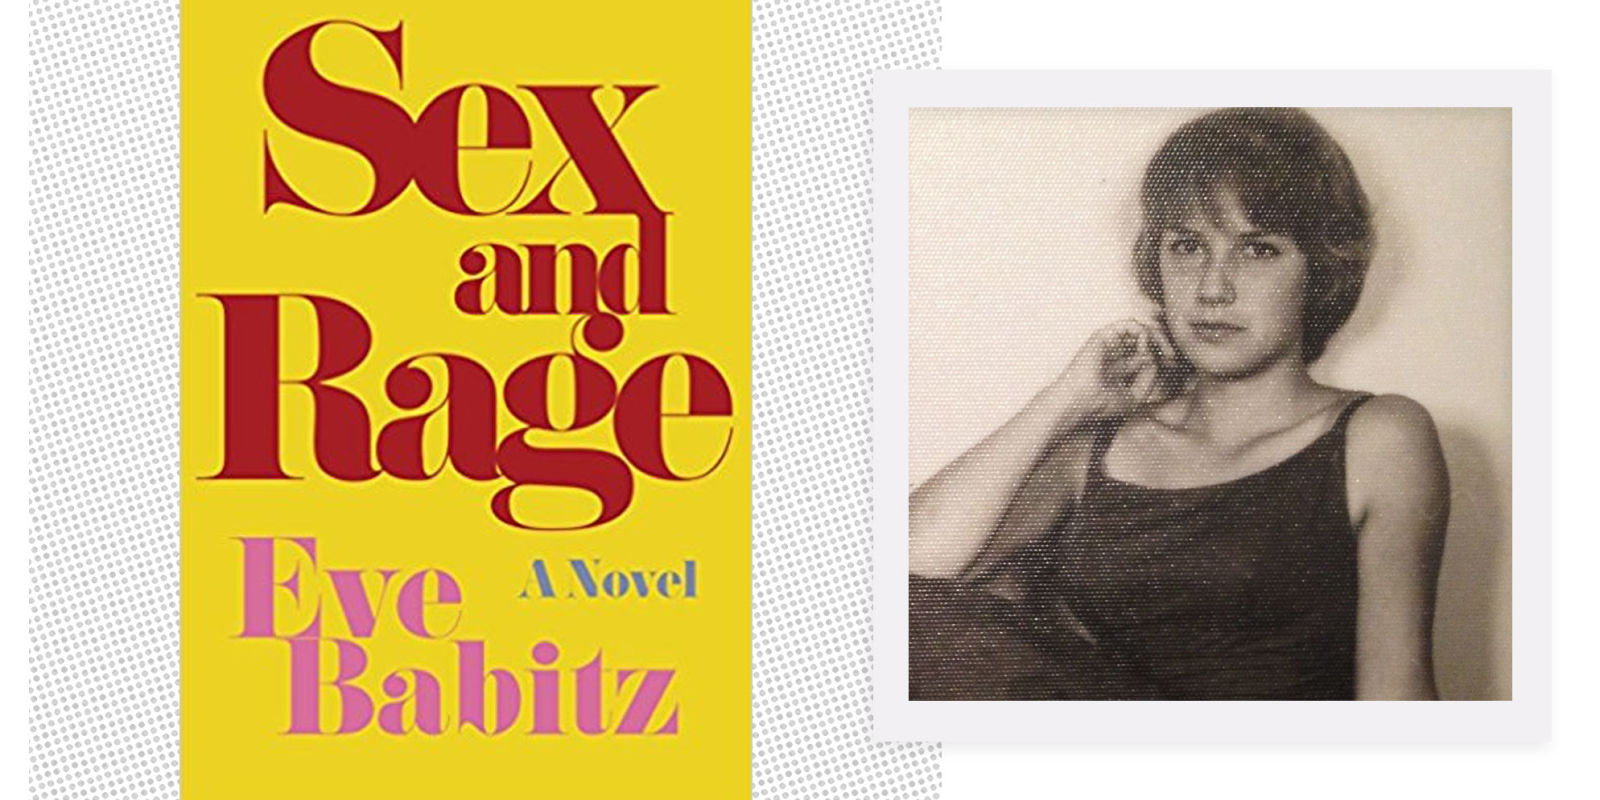 eve babitz sex and rage in New Jersey